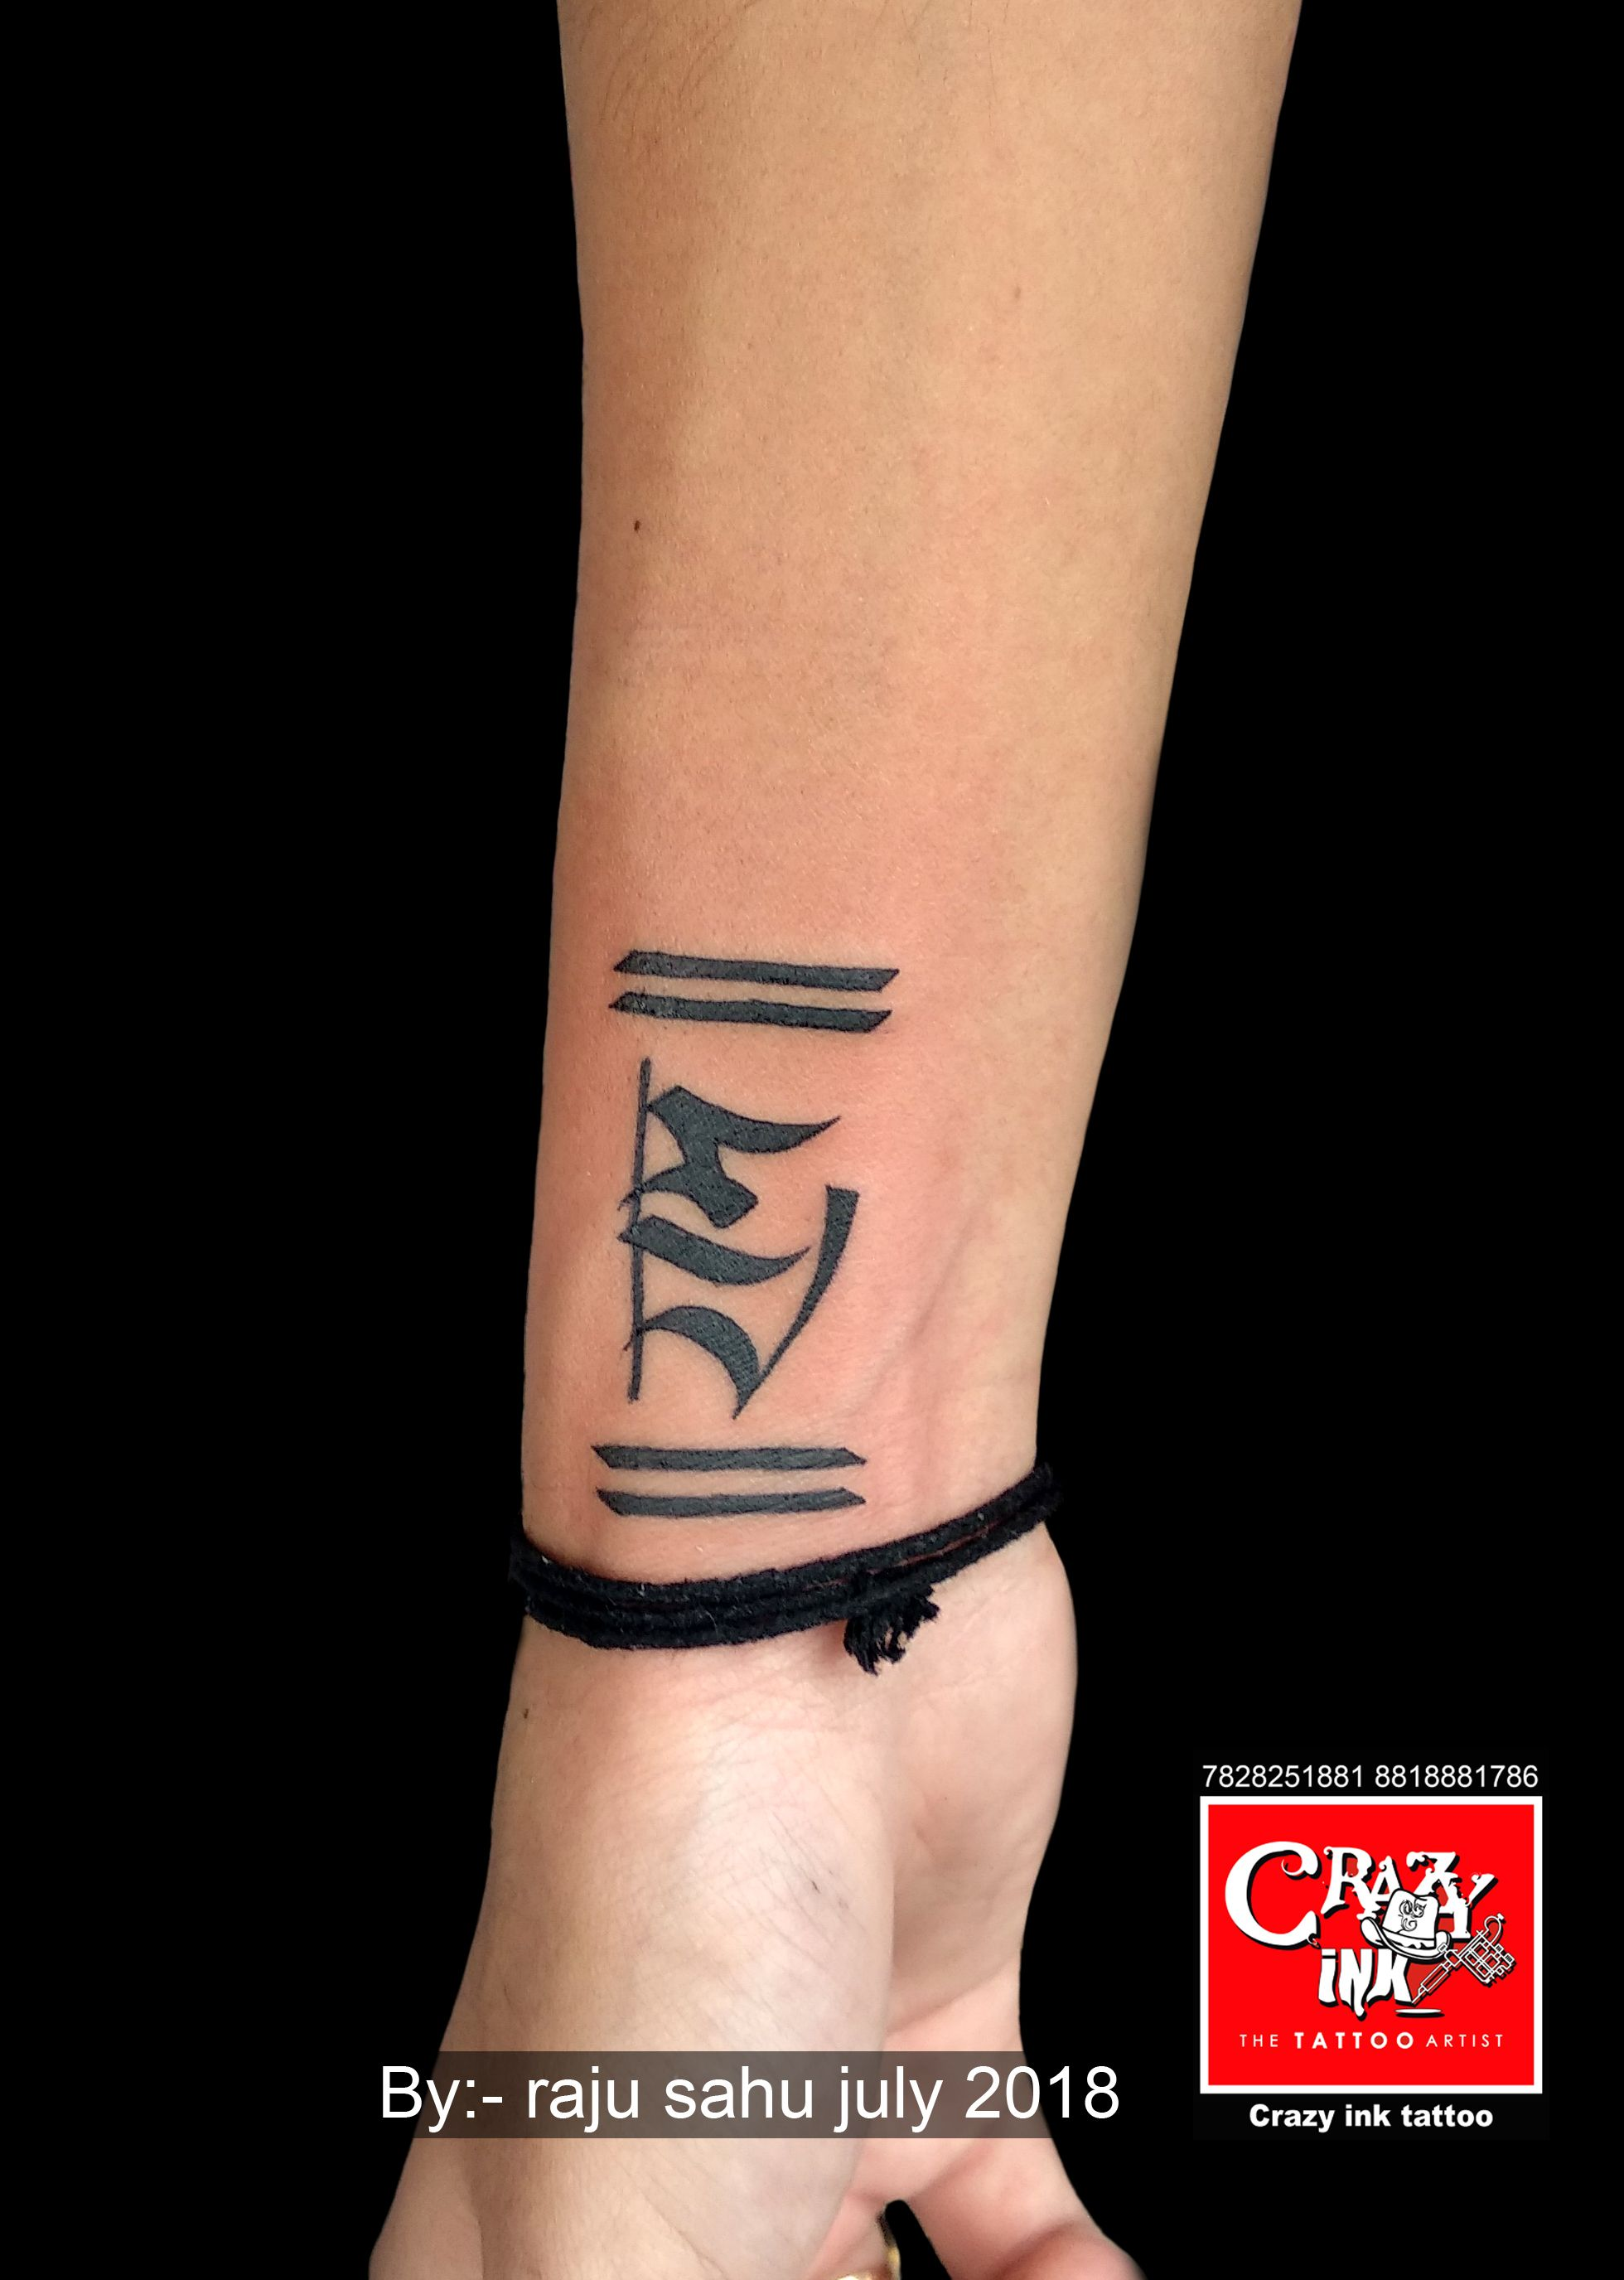 Crazy Ink Tattoo And Body In Raipur India Name Tattoos On Wrist Wrist Tattoos For Guys Tattoos